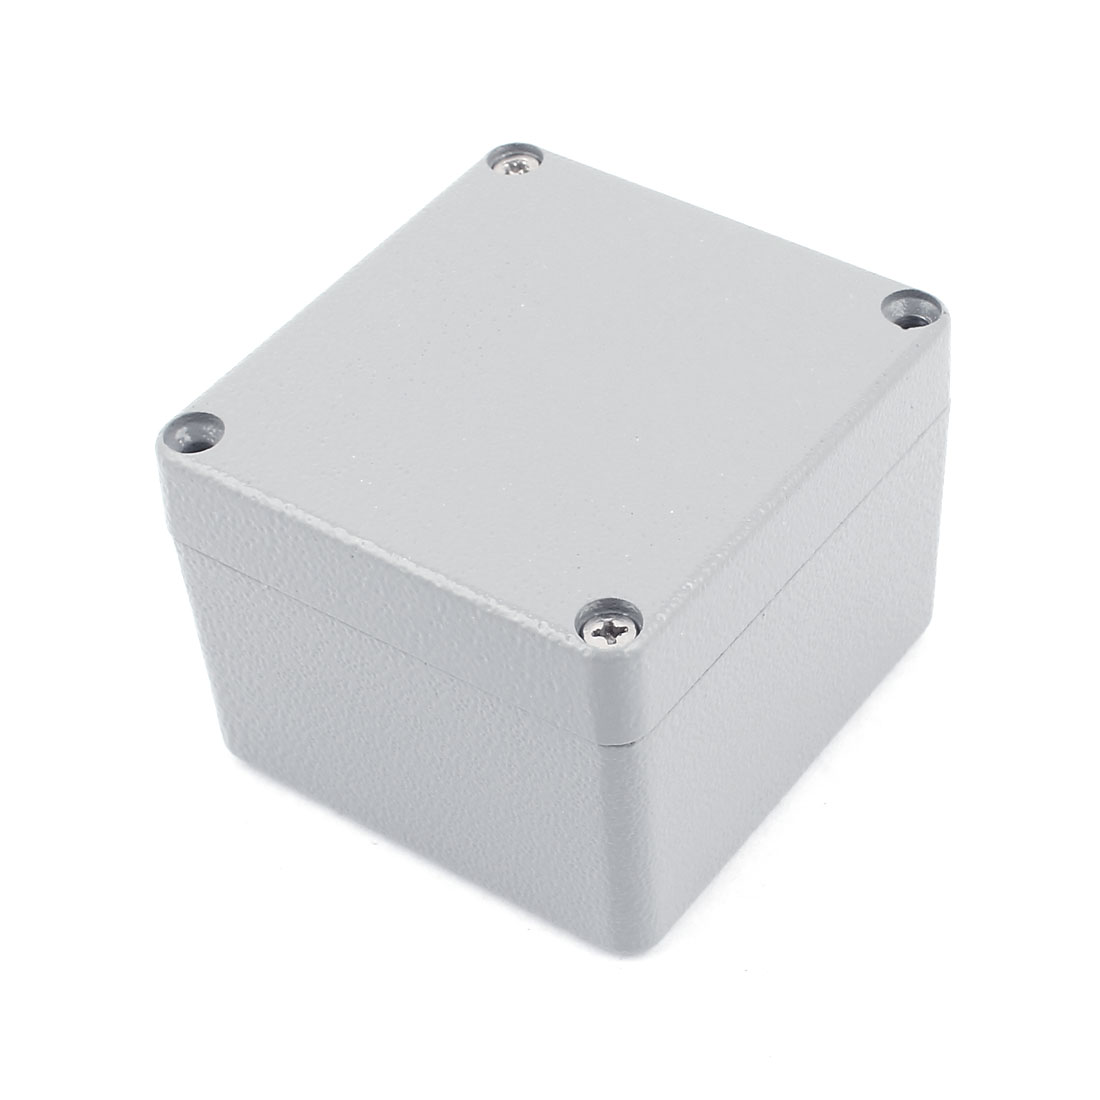 80mm x 76mm x 57mm Waterproof Aluminium Alloy Sealed Electrical Junction Box